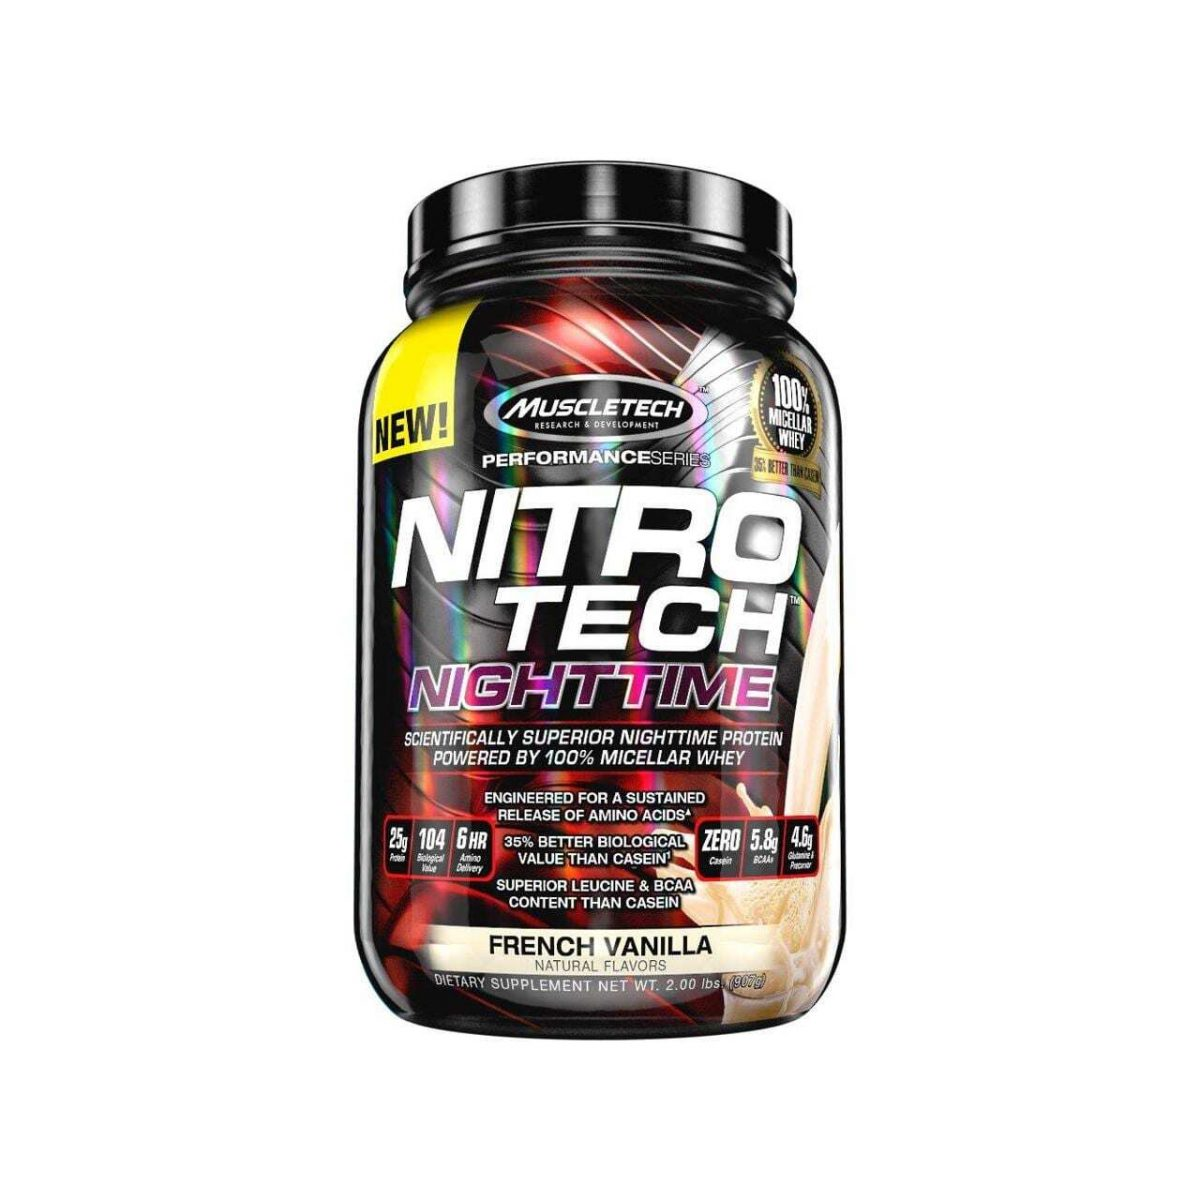 MuscleTech Performance Series Nitro-Tech Night Time - French Vanilla - 2 lbs (907g)